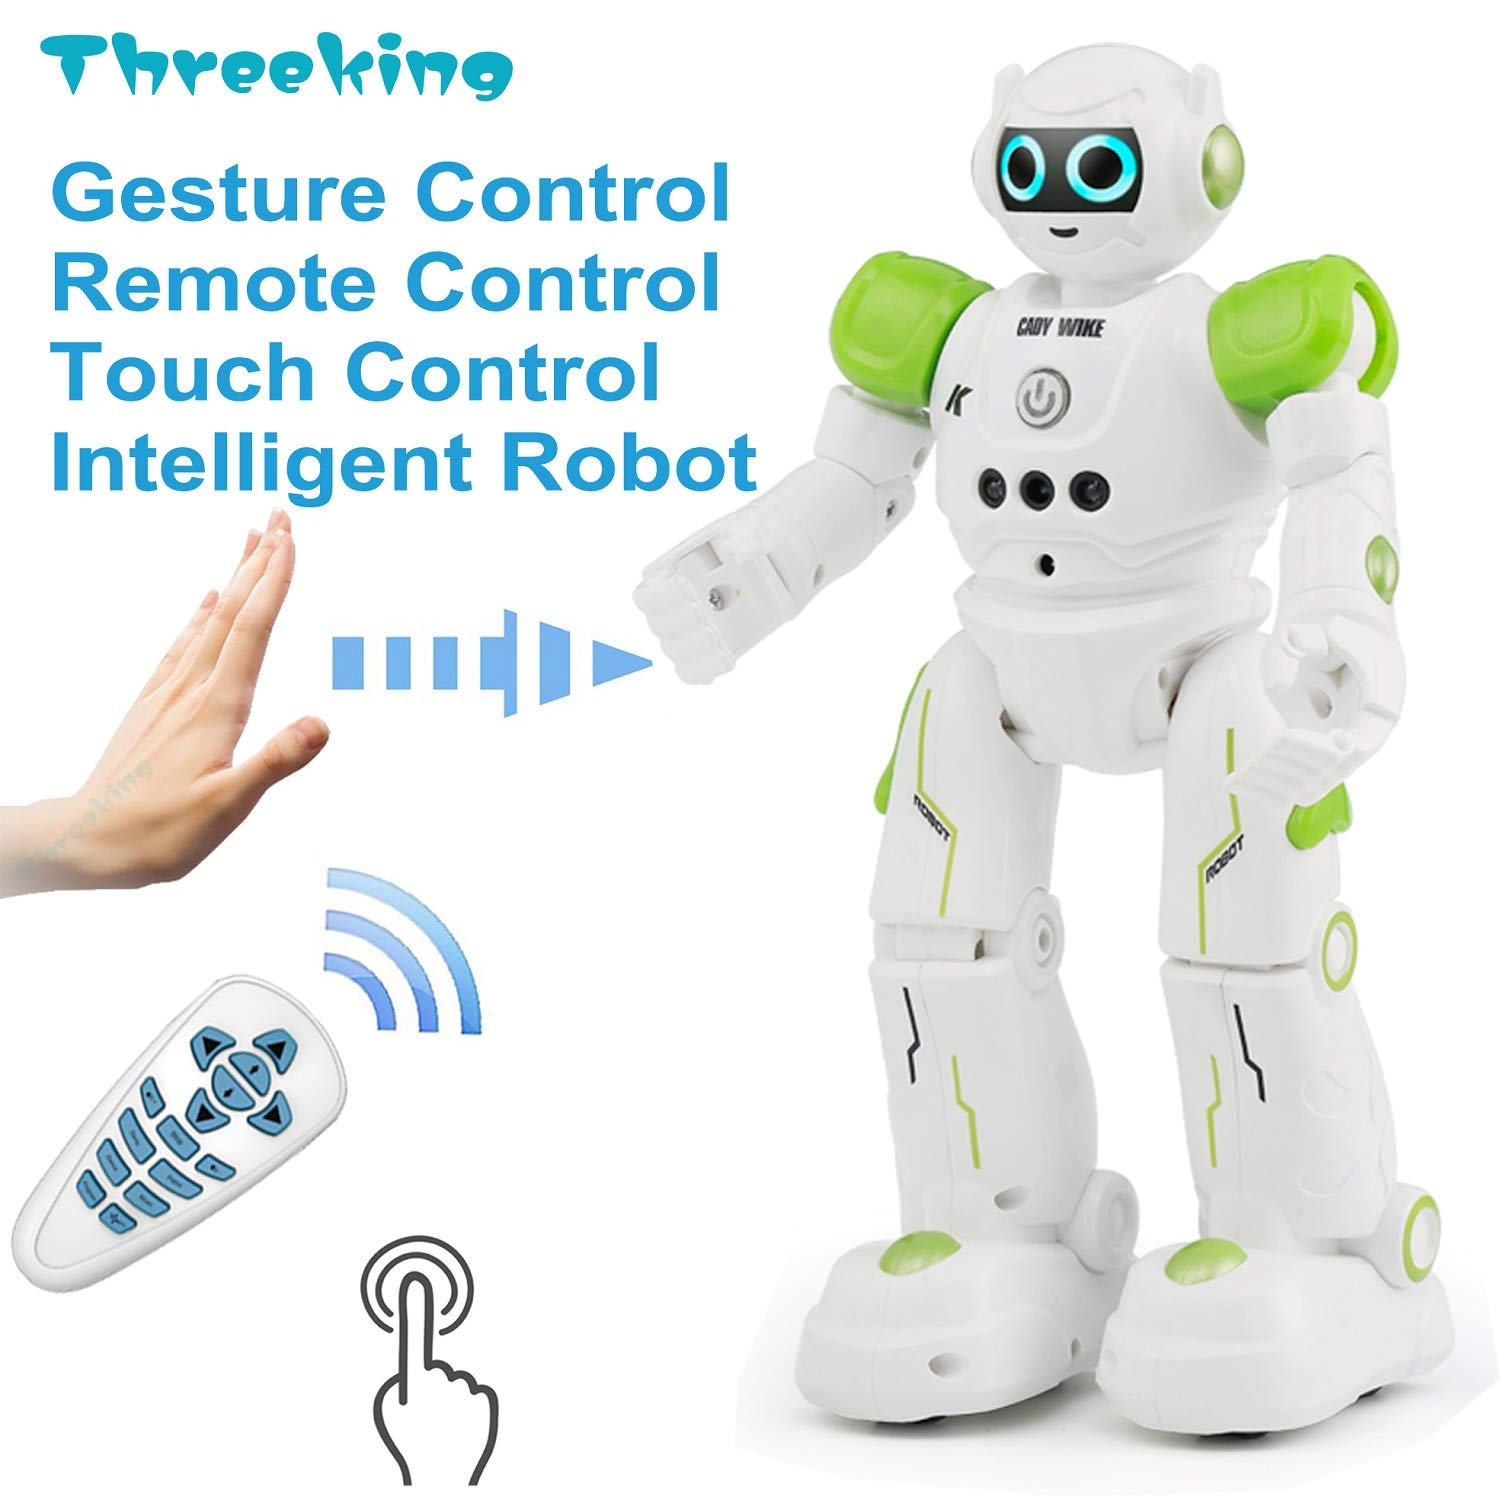 Threeking Smart Robot Toys Gesture Control Remote Control Robot JJRC Robot Gift for Boys Girls Kid's Companion:Game Learning Music Dance...Rechargeable Rc Robot Toy - Green